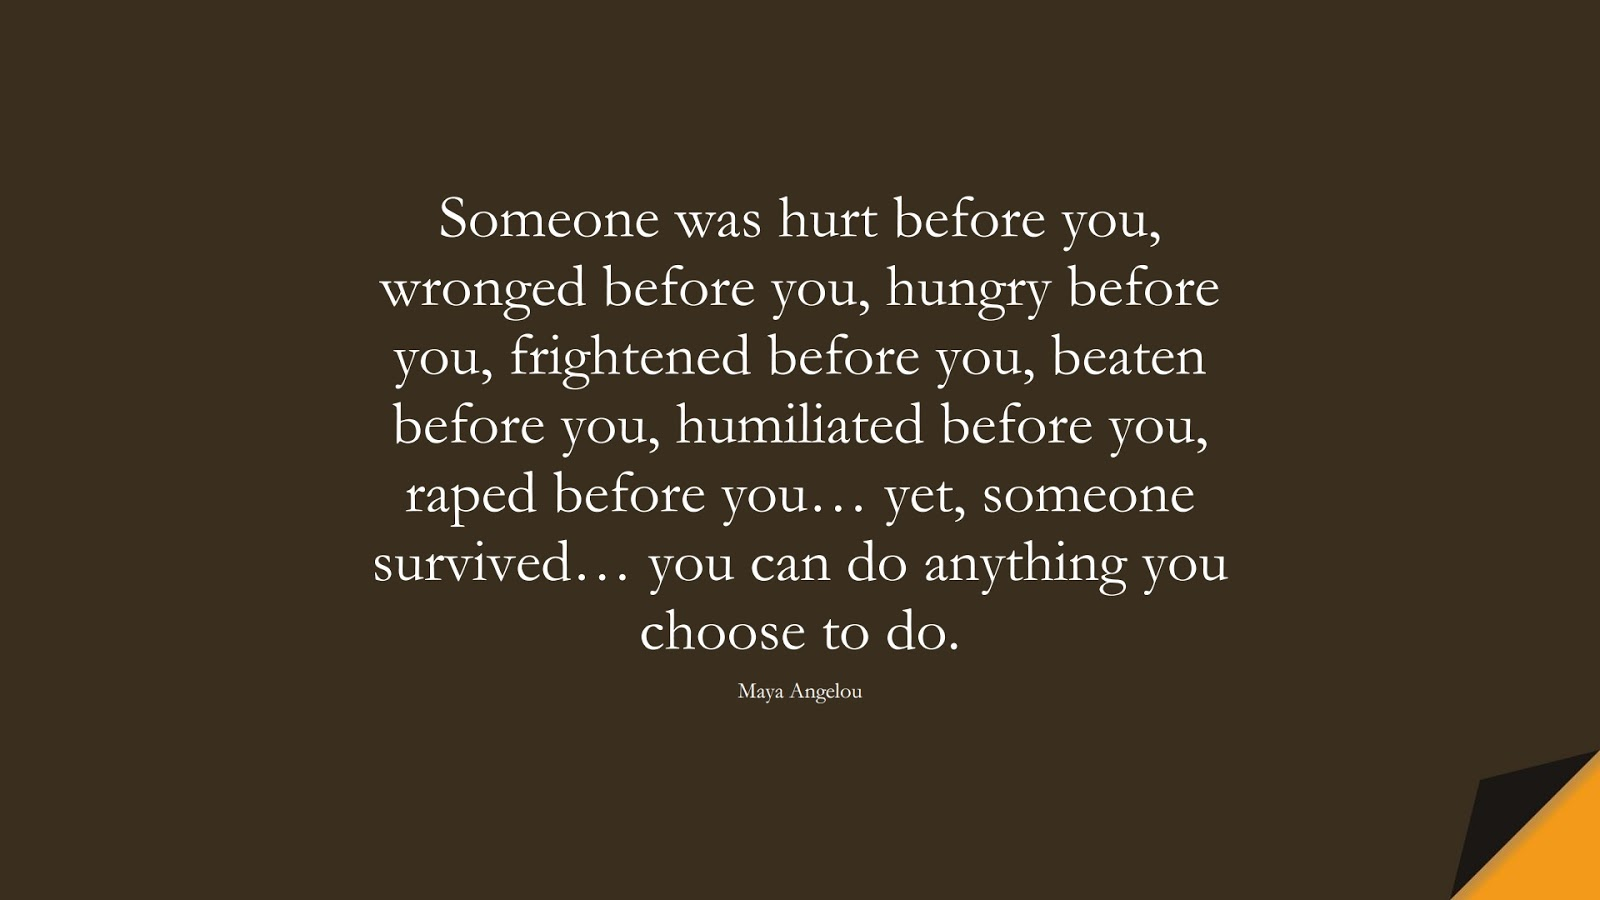 Someone was hurt before you, wronged before you, hungry before you, frightened before you, beaten before you, humiliated before you, raped before you… yet, someone survived… you can do anything you choose to do. (Maya Angelou);  #MayaAngelouQuotes